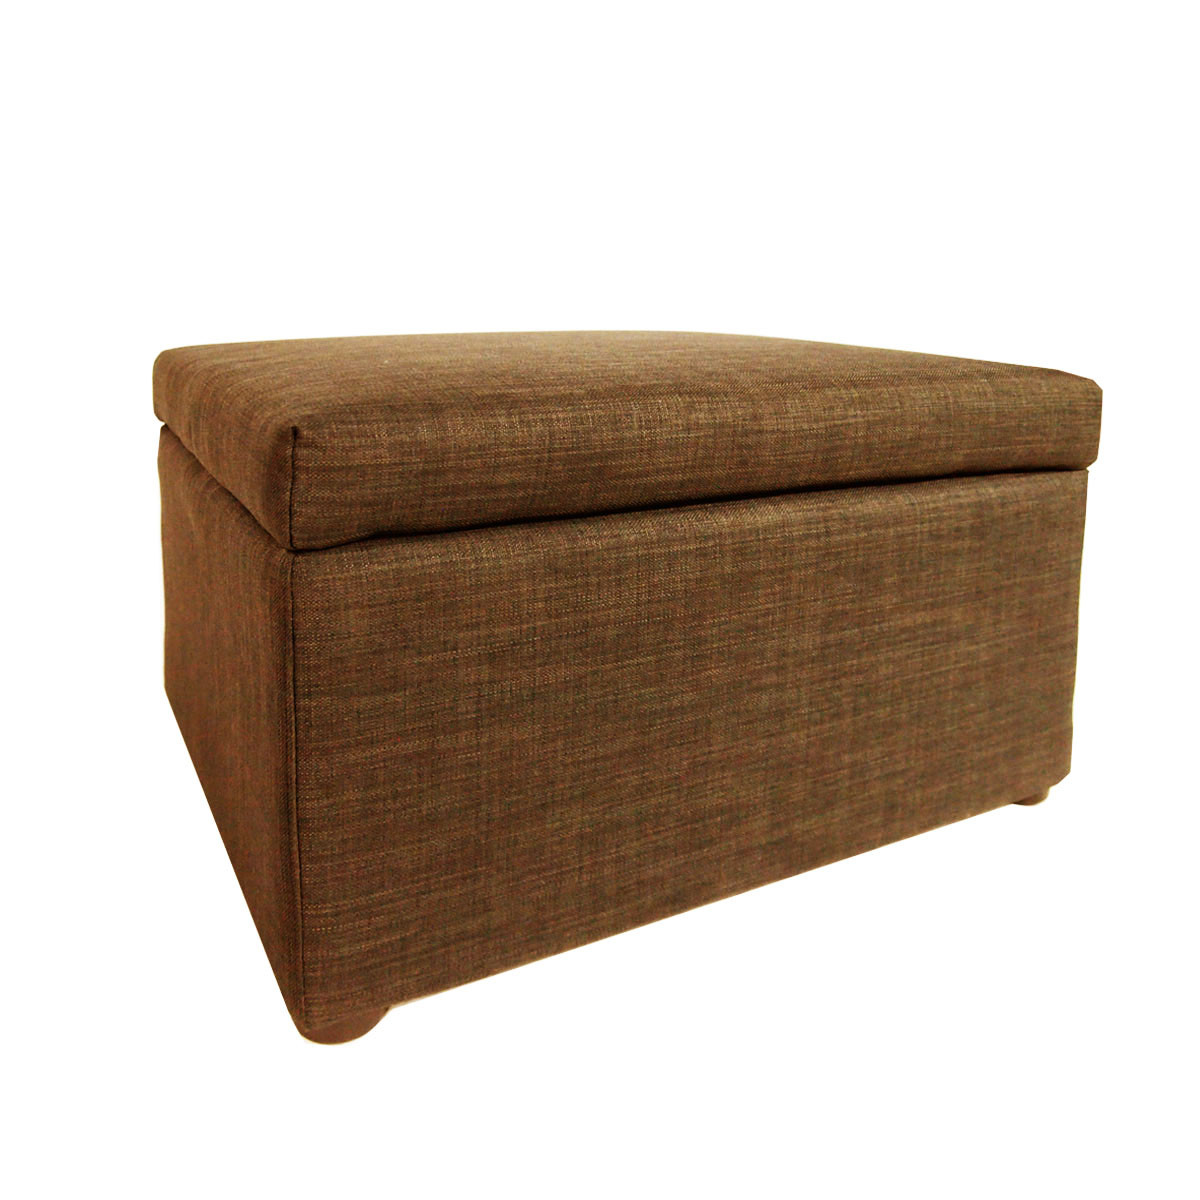 Ottoman Coffee Table Brown Coffee Tables Living Room Furniture Furniture Home D Cor